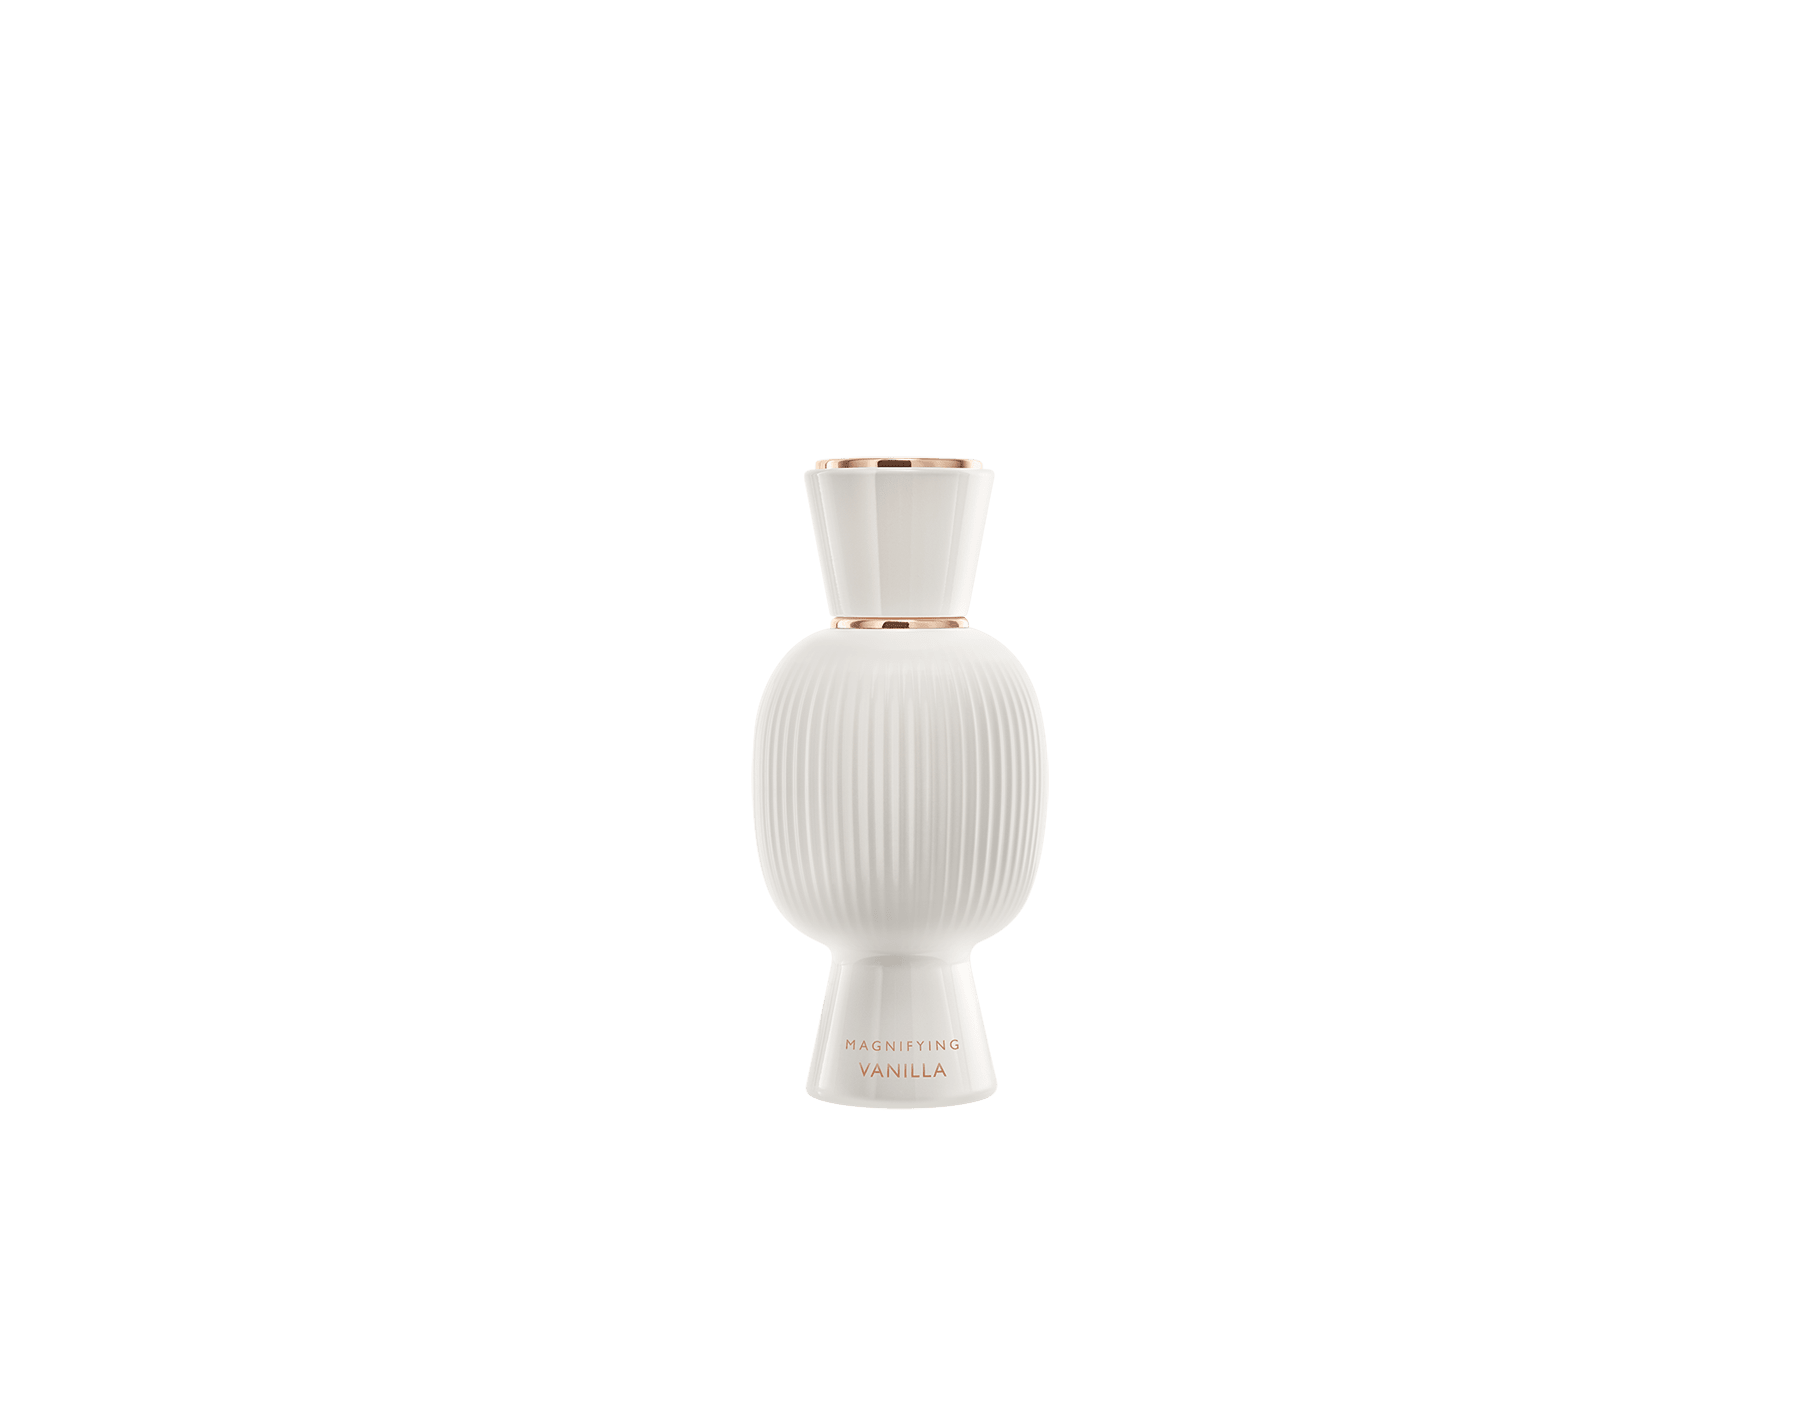 An exclusive perfume set, as bold and unique as you. The liquorous floriental Rock'n'Rome Allegra Eau de Parfum blends with the addictive aroma of the Magnifying Vanilla Essence, creating an irresistible personalised women's perfume. Perfume-Set-Rock-n-Rome-Eau-de-Parfum-and-Vanilla-Magnifying image 3